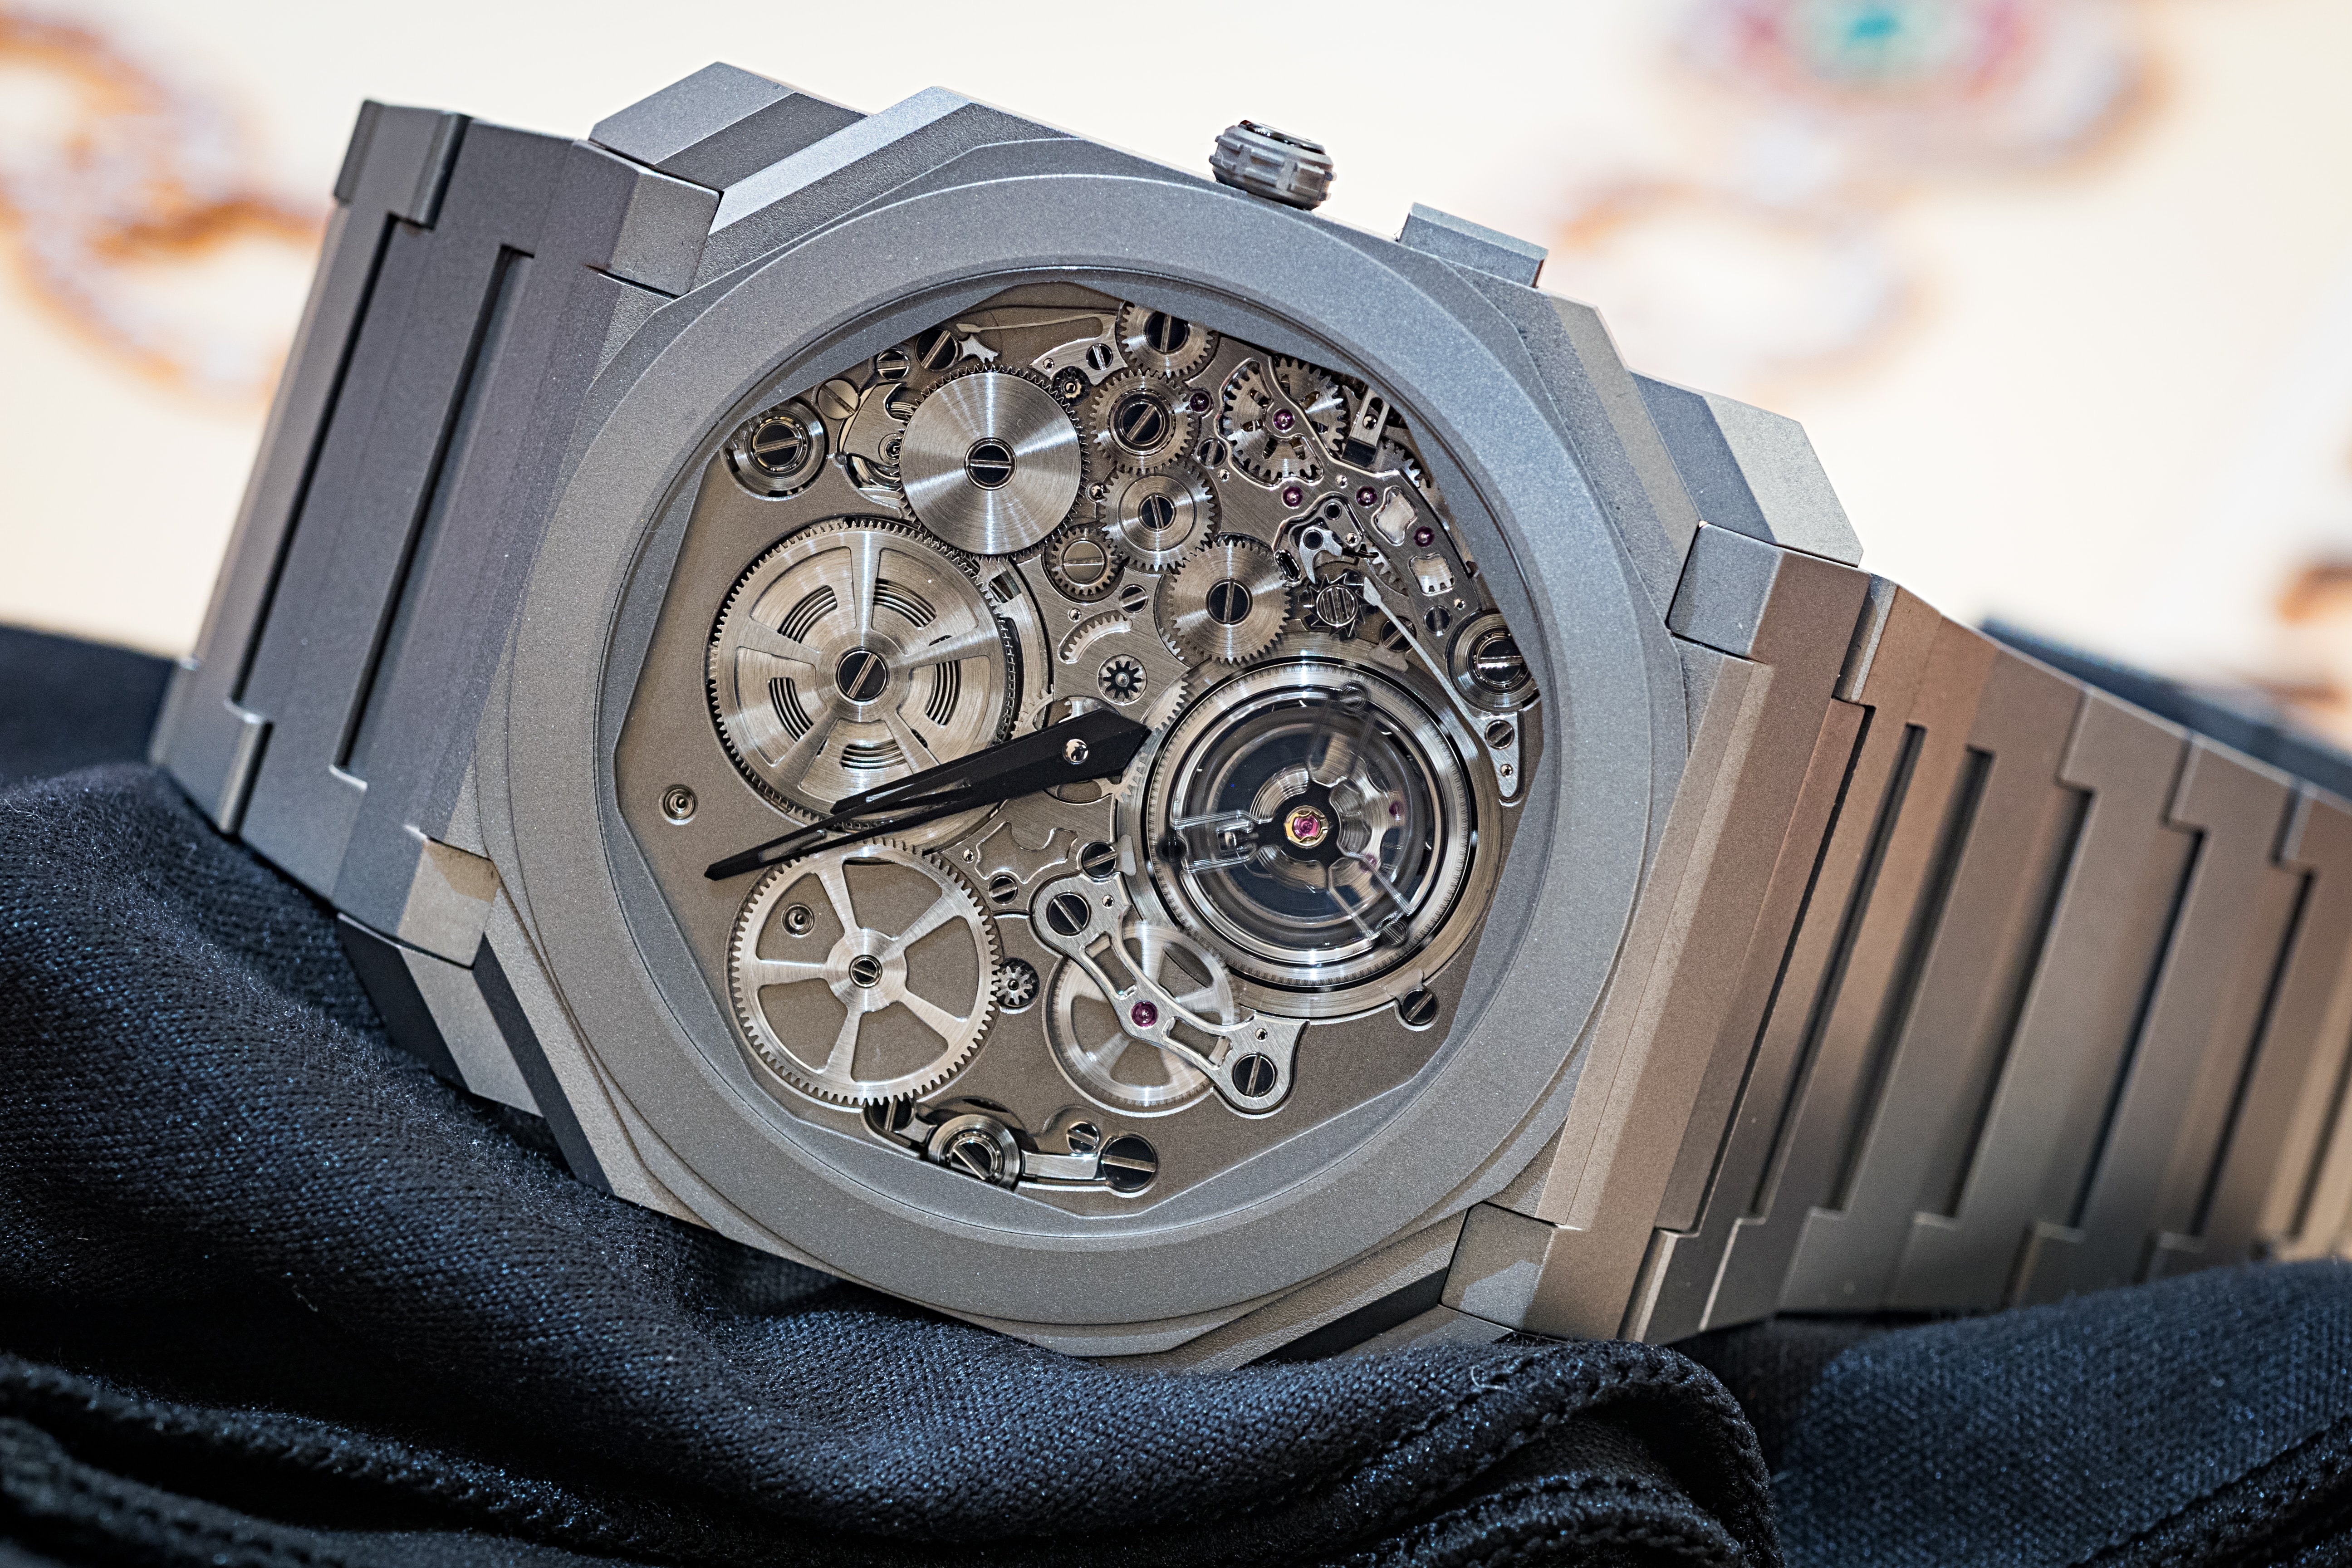 Happenings: See The Bulgari Octo Finissimo Tourbillon Automatic And Minute Repeater Carbon For The First Time In The US, At Bulgari NY P3210921